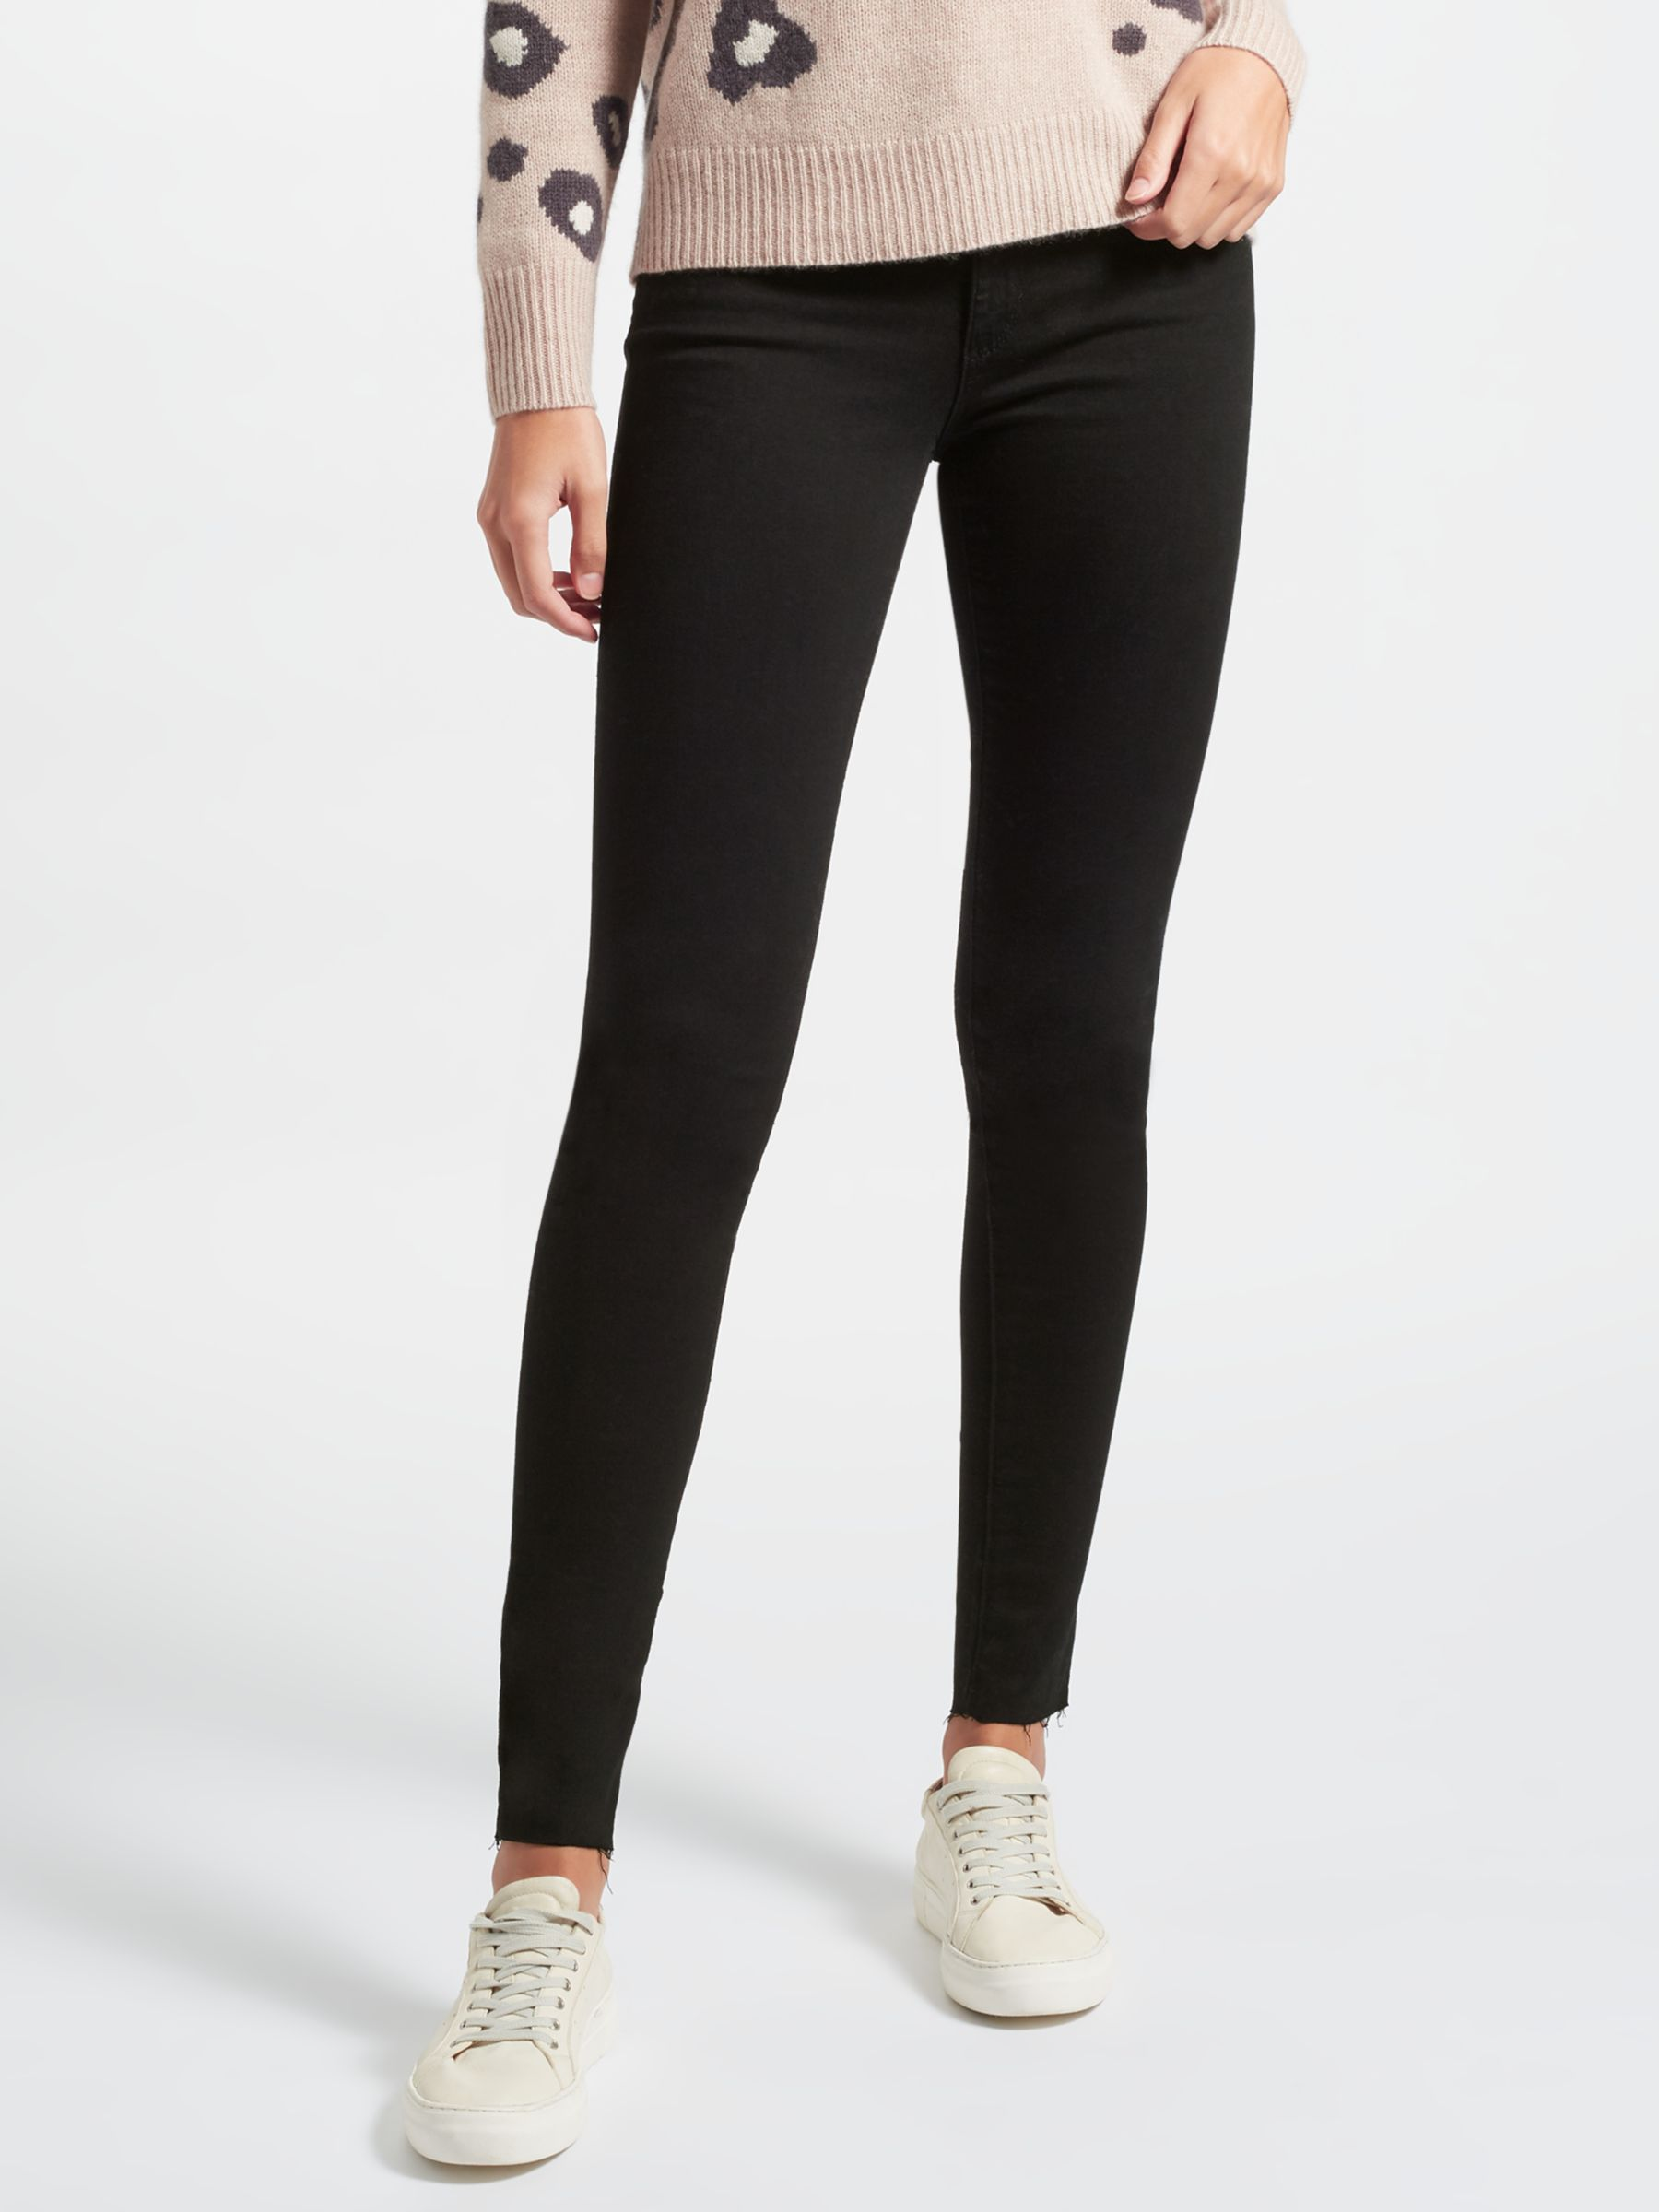 7 For All Mankind 7 For All Mankind Rozie High Rise Slim Illusion Straight Leg Jeans, Black